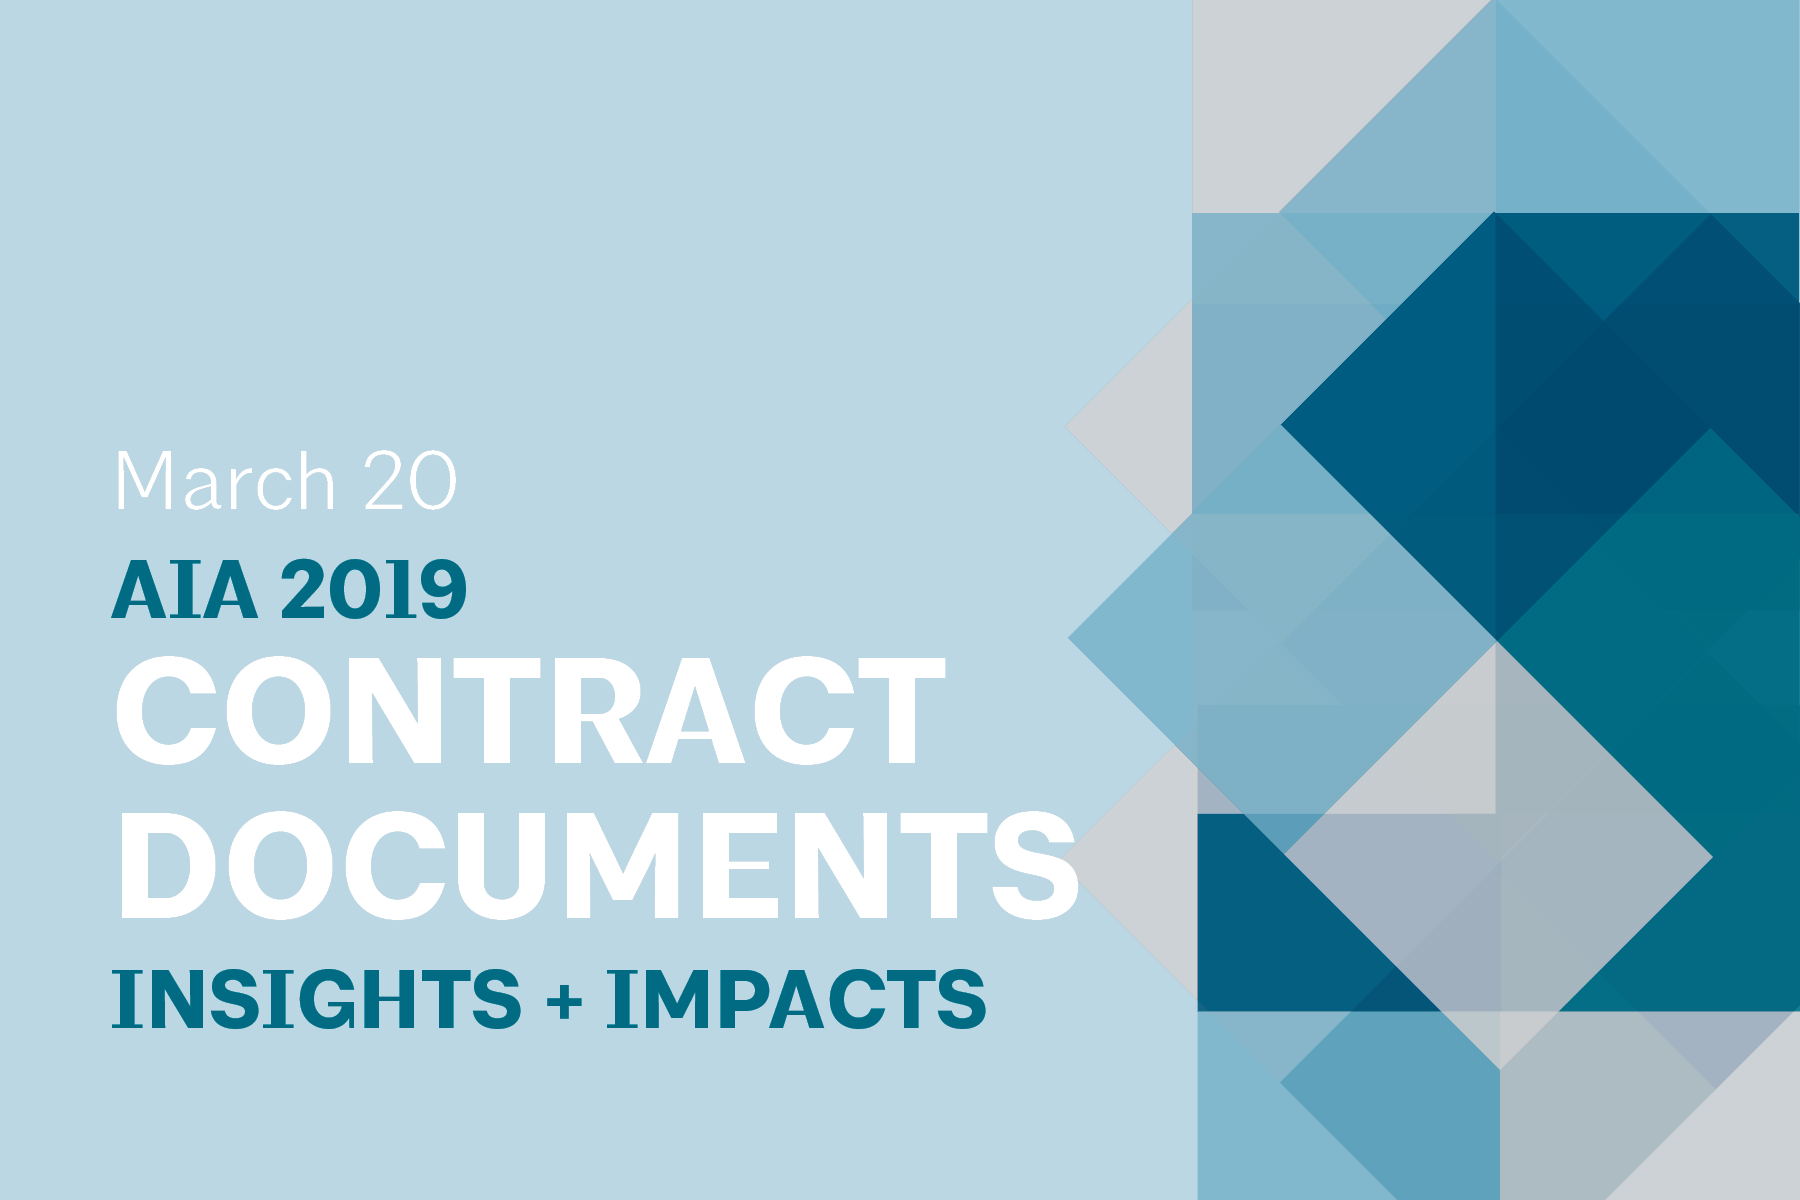 This page is intended only for participants of AIA 2019 Contract Documents: Insights & Impacts.